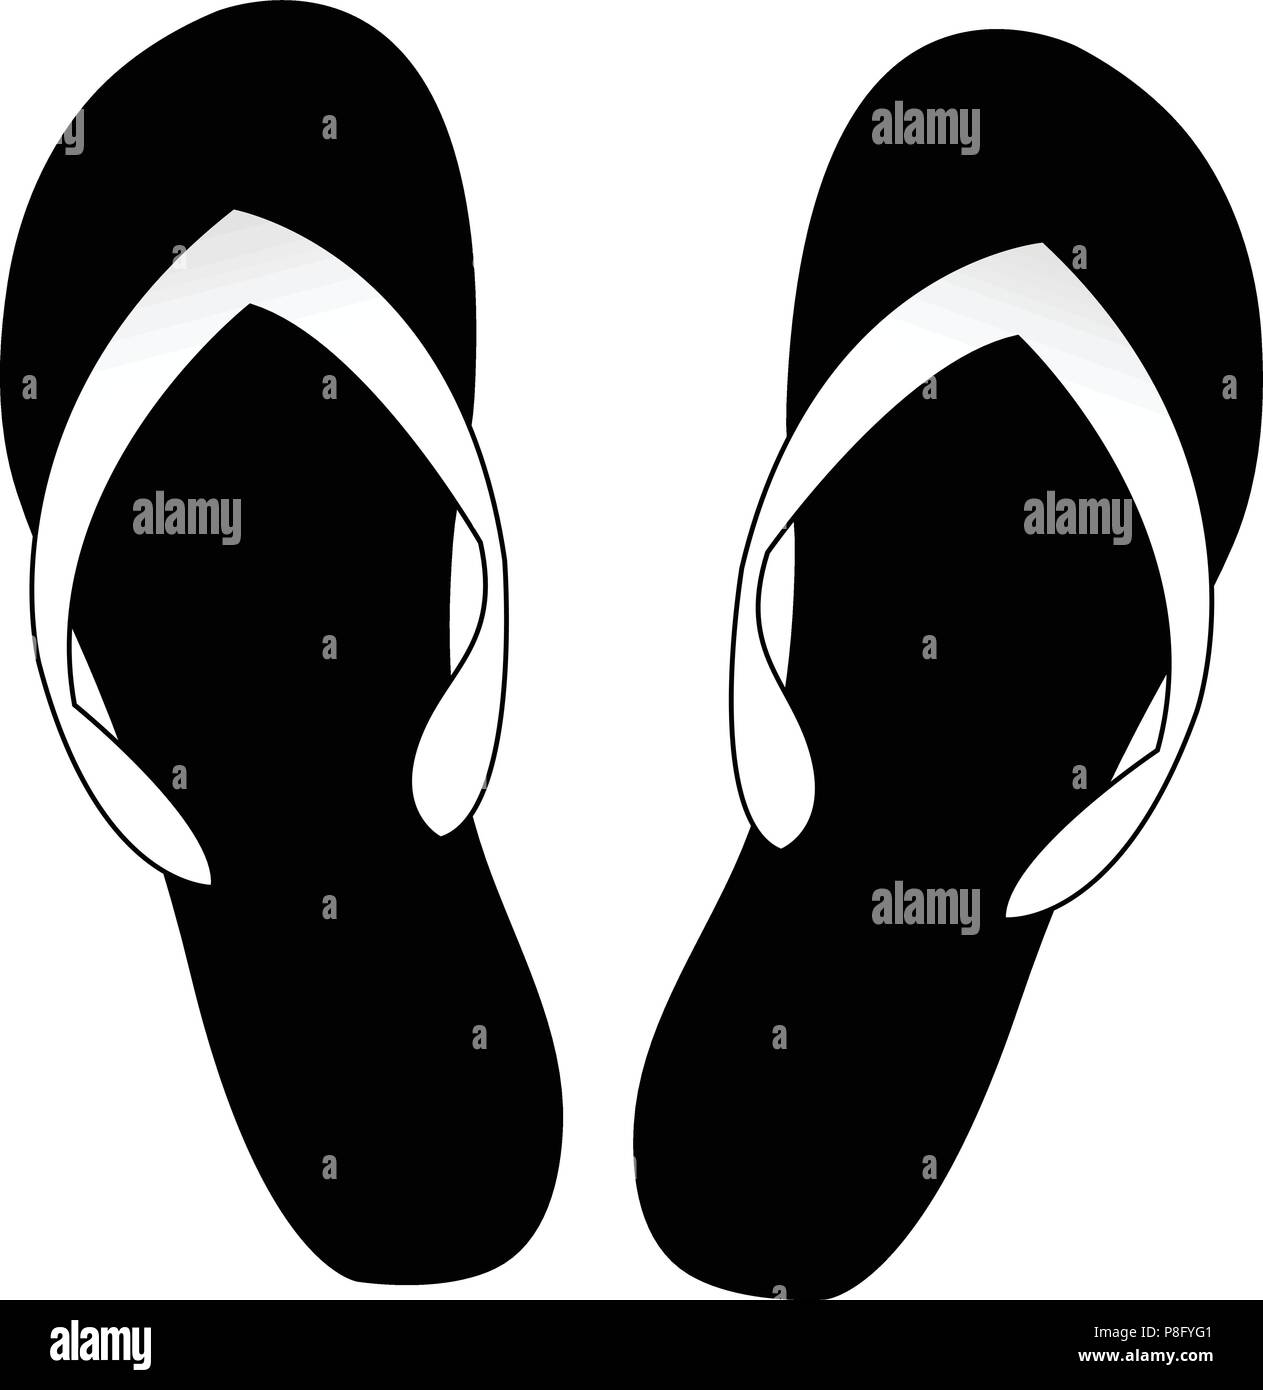 7e83822d7 Vector black and white monochrome silhouette illustration of flip flops icon  isolated on white background.